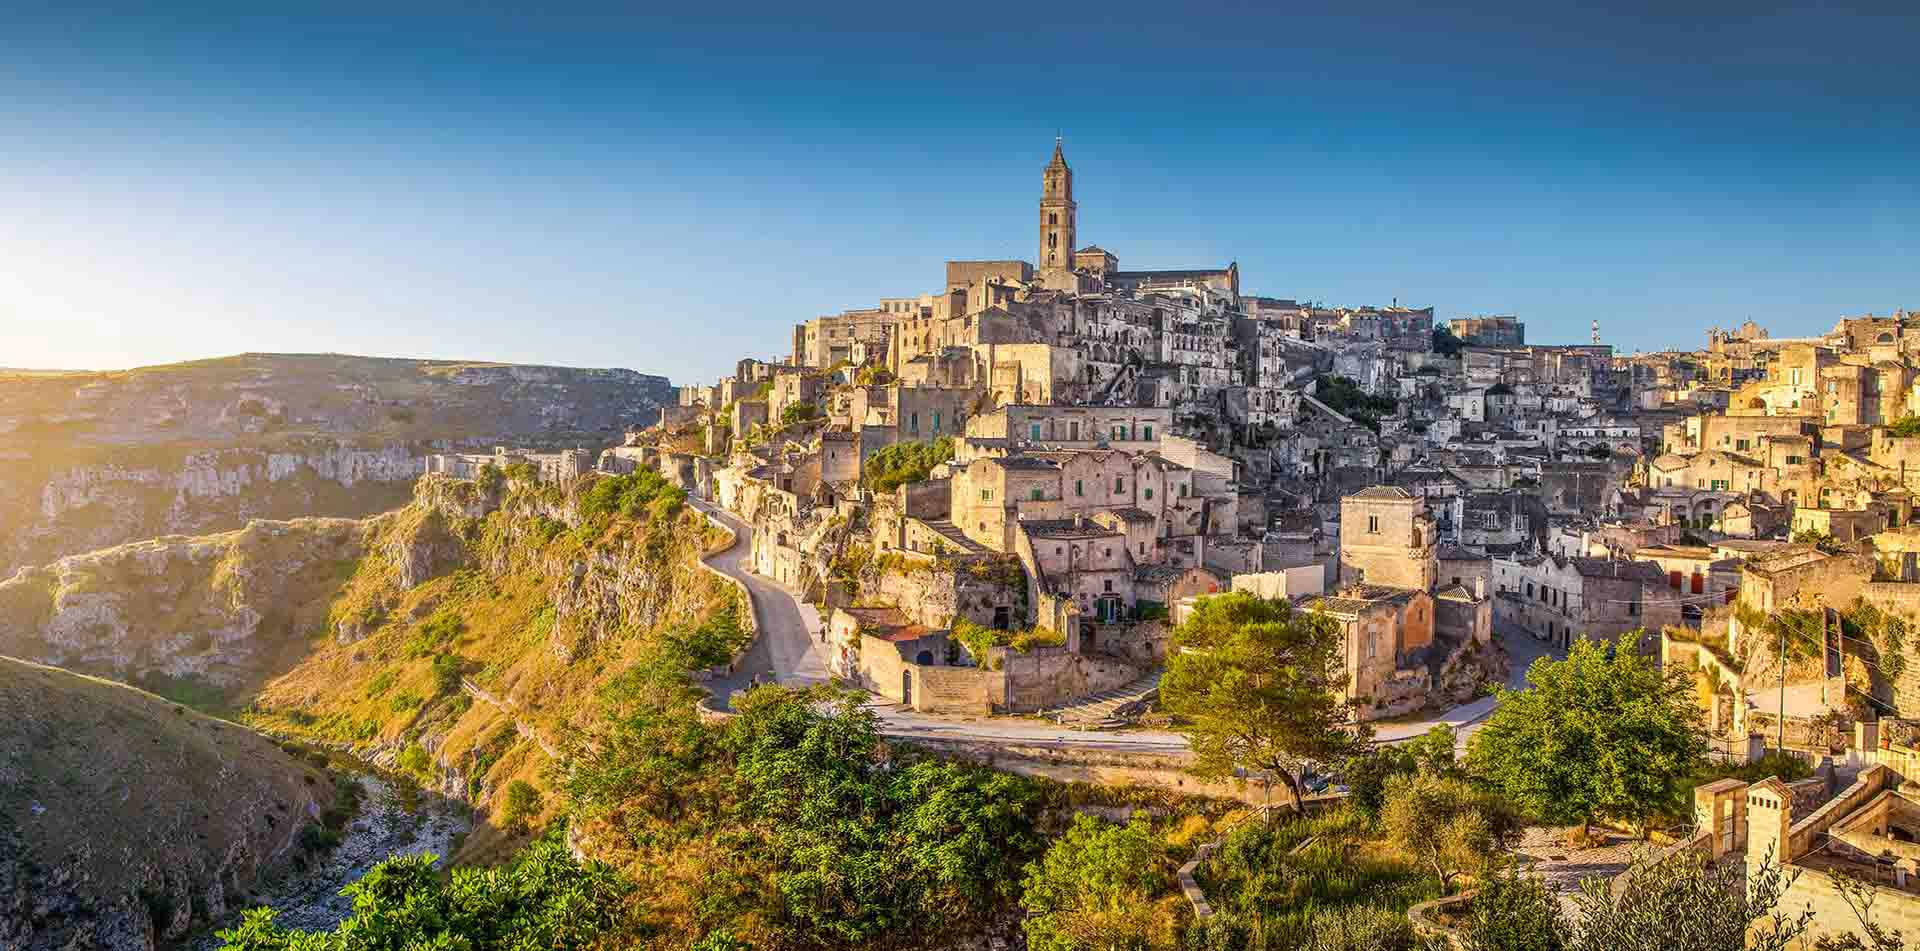 UNESCO World Heritage Site of Matera